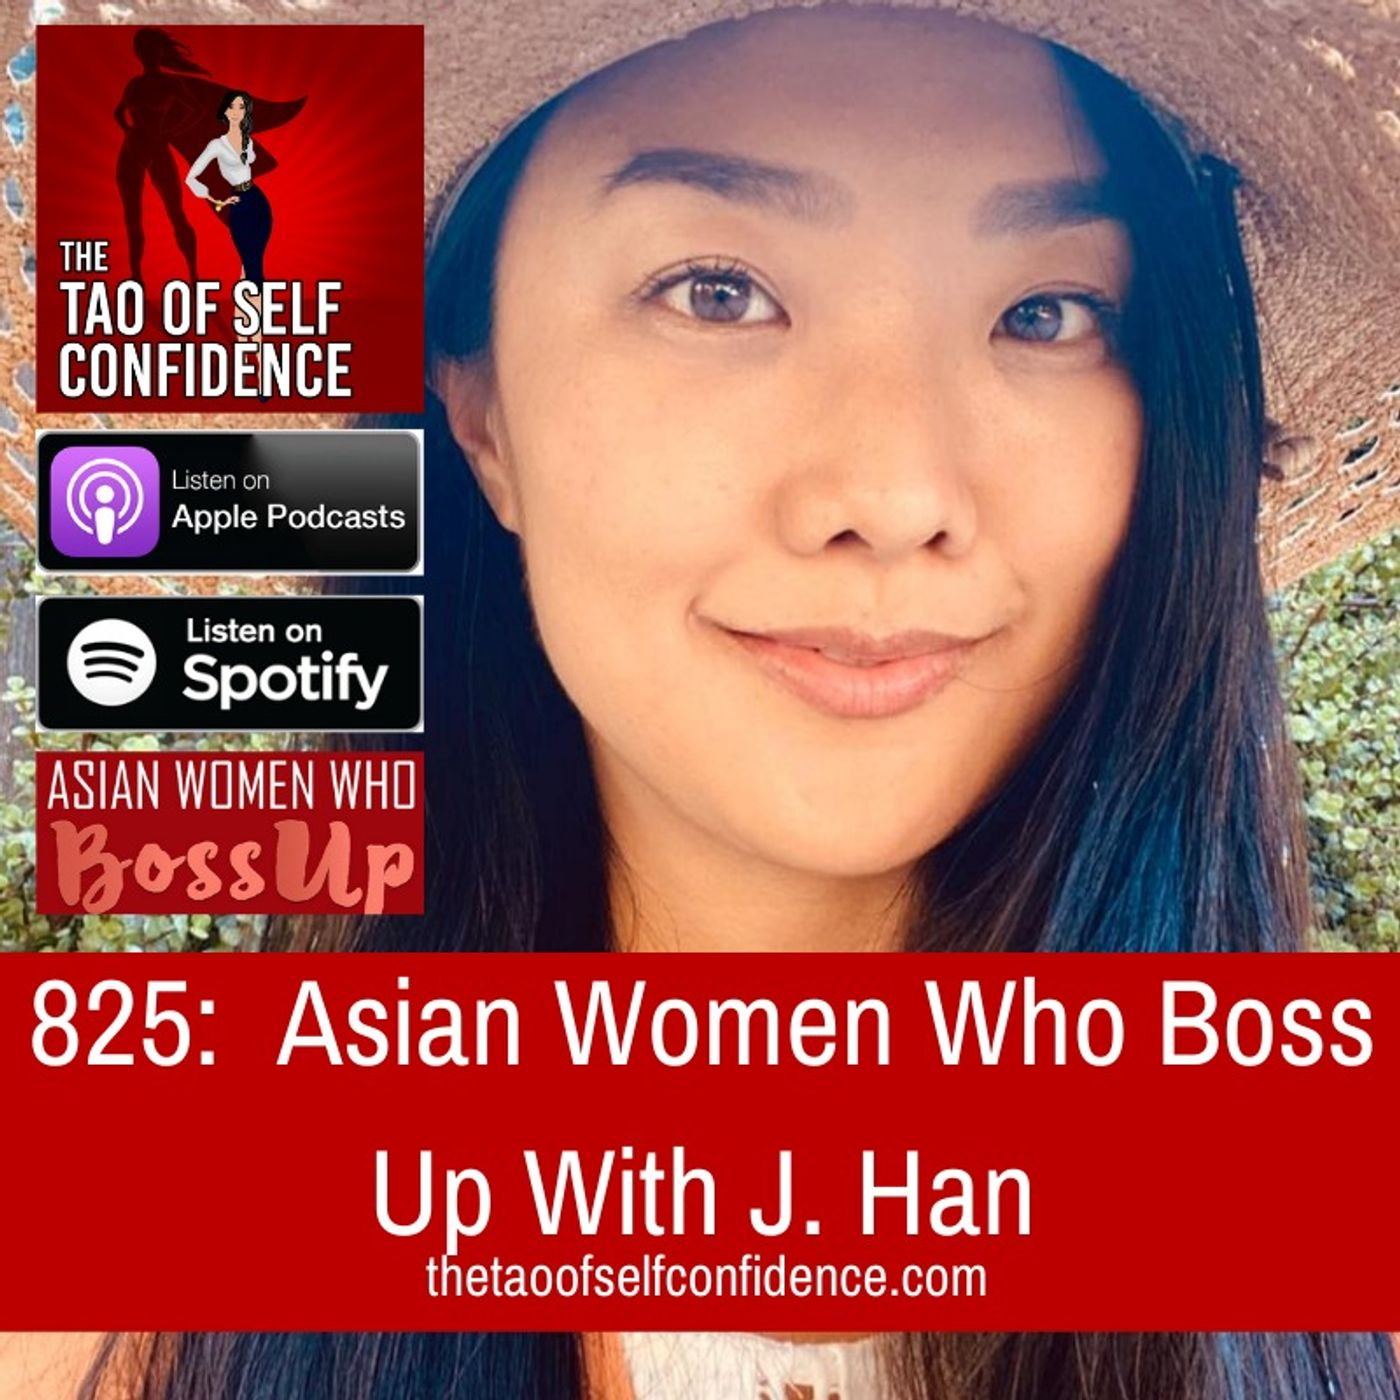 825:  Asian Women Who Boss Up With J. Han